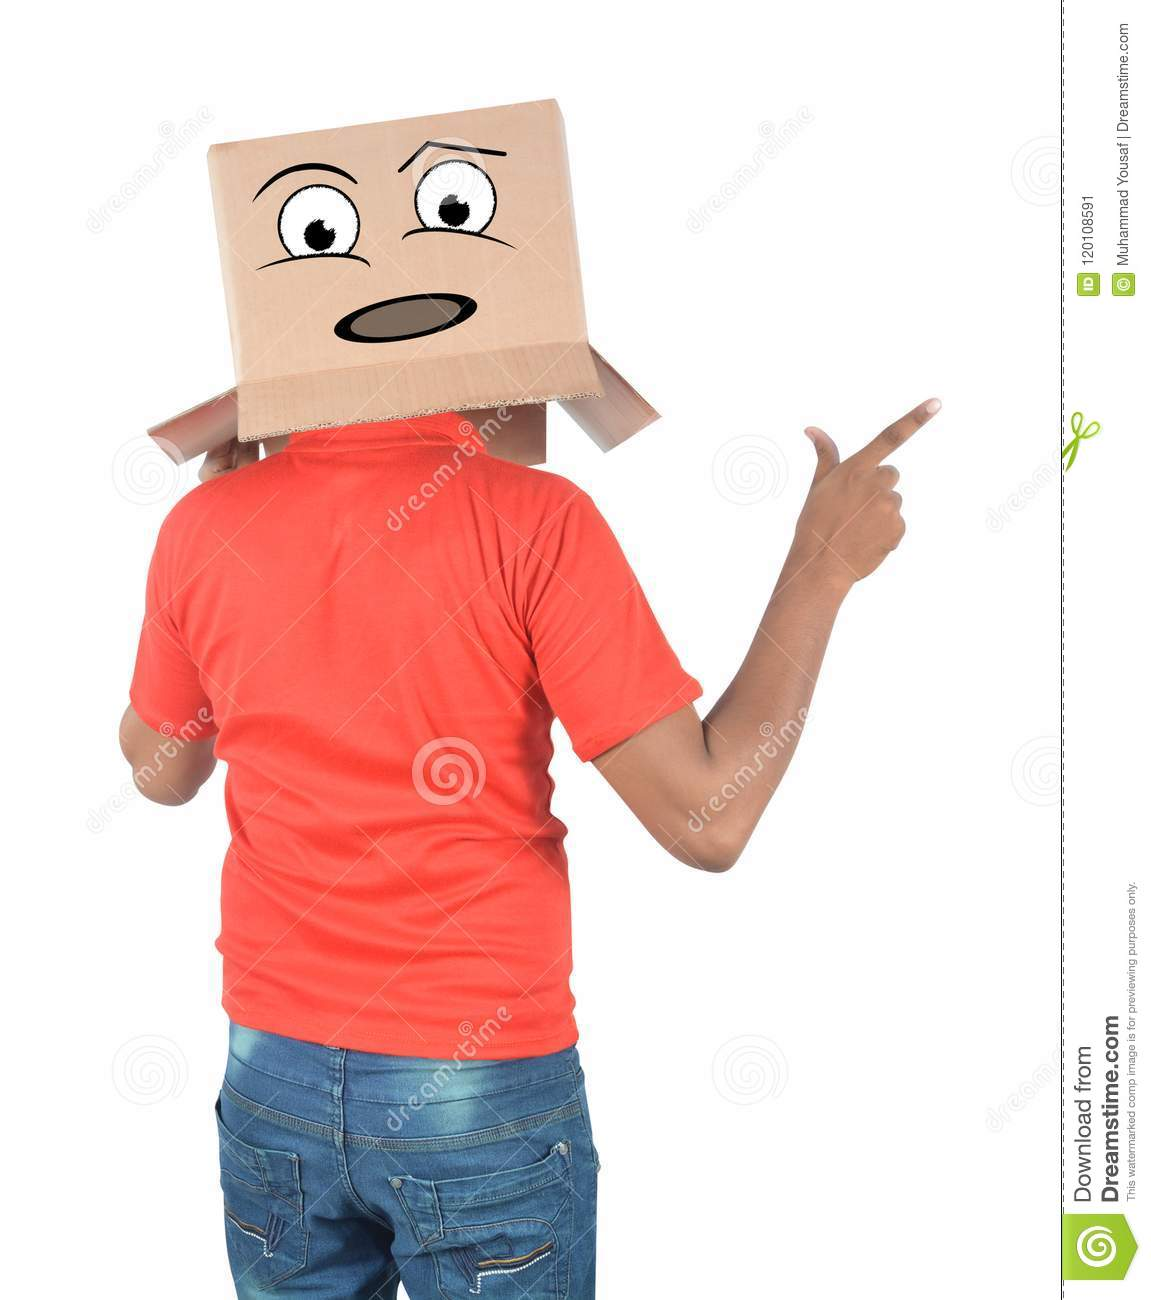 Young man gesturing with a cardboard box on his head with sad fa